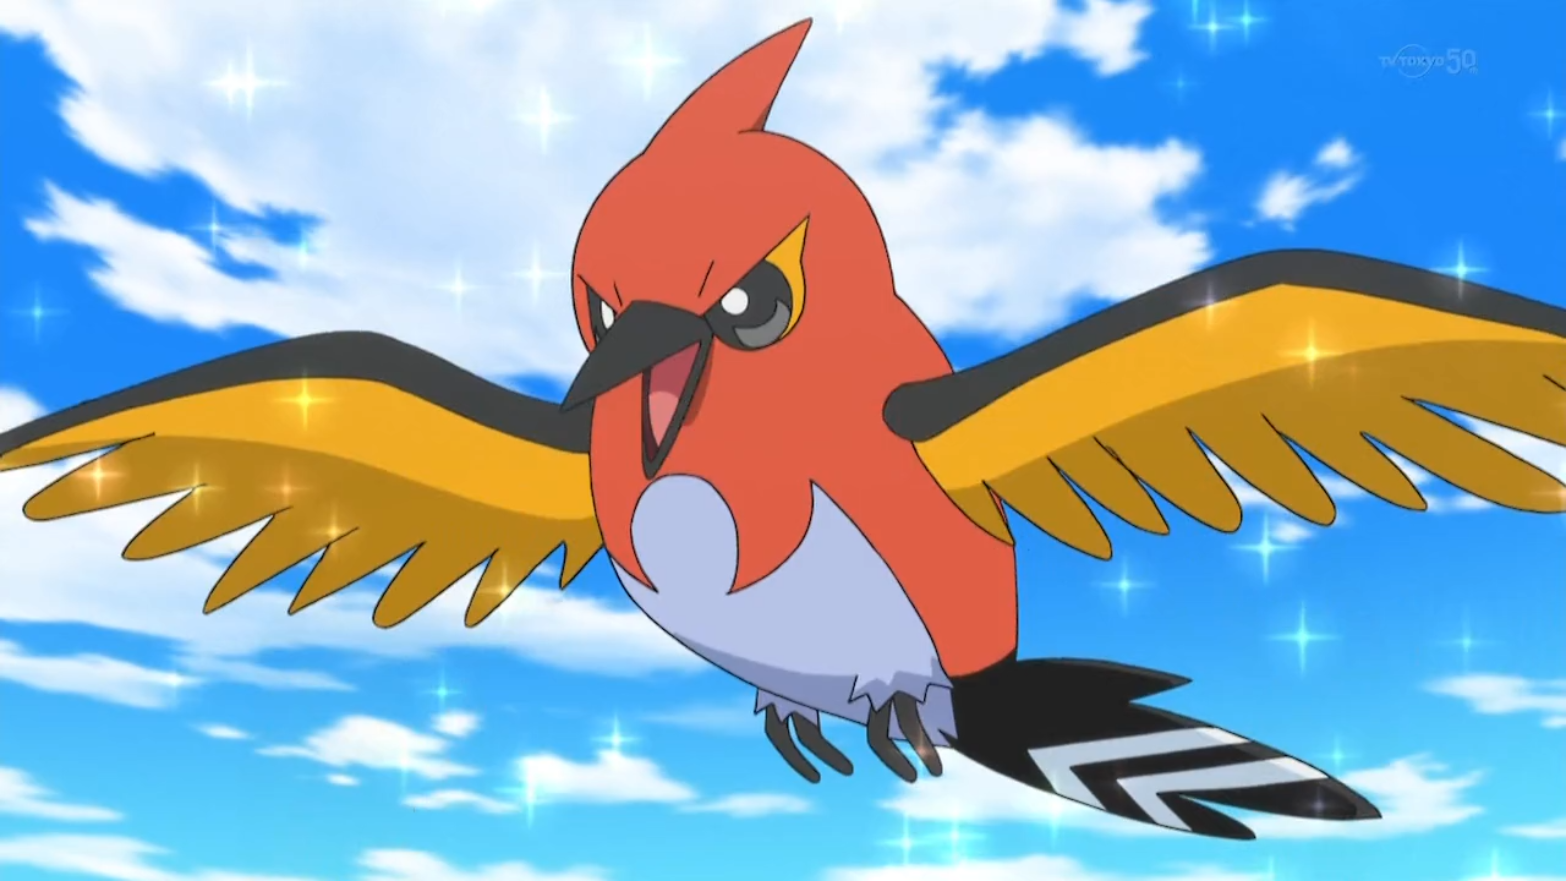 Nico's Fletchinder was introduced alongside with Chester's Fletchling when Serena mentioned going to the Battle Chateau. Fletchinder later battled Farrell's Dusknoir.